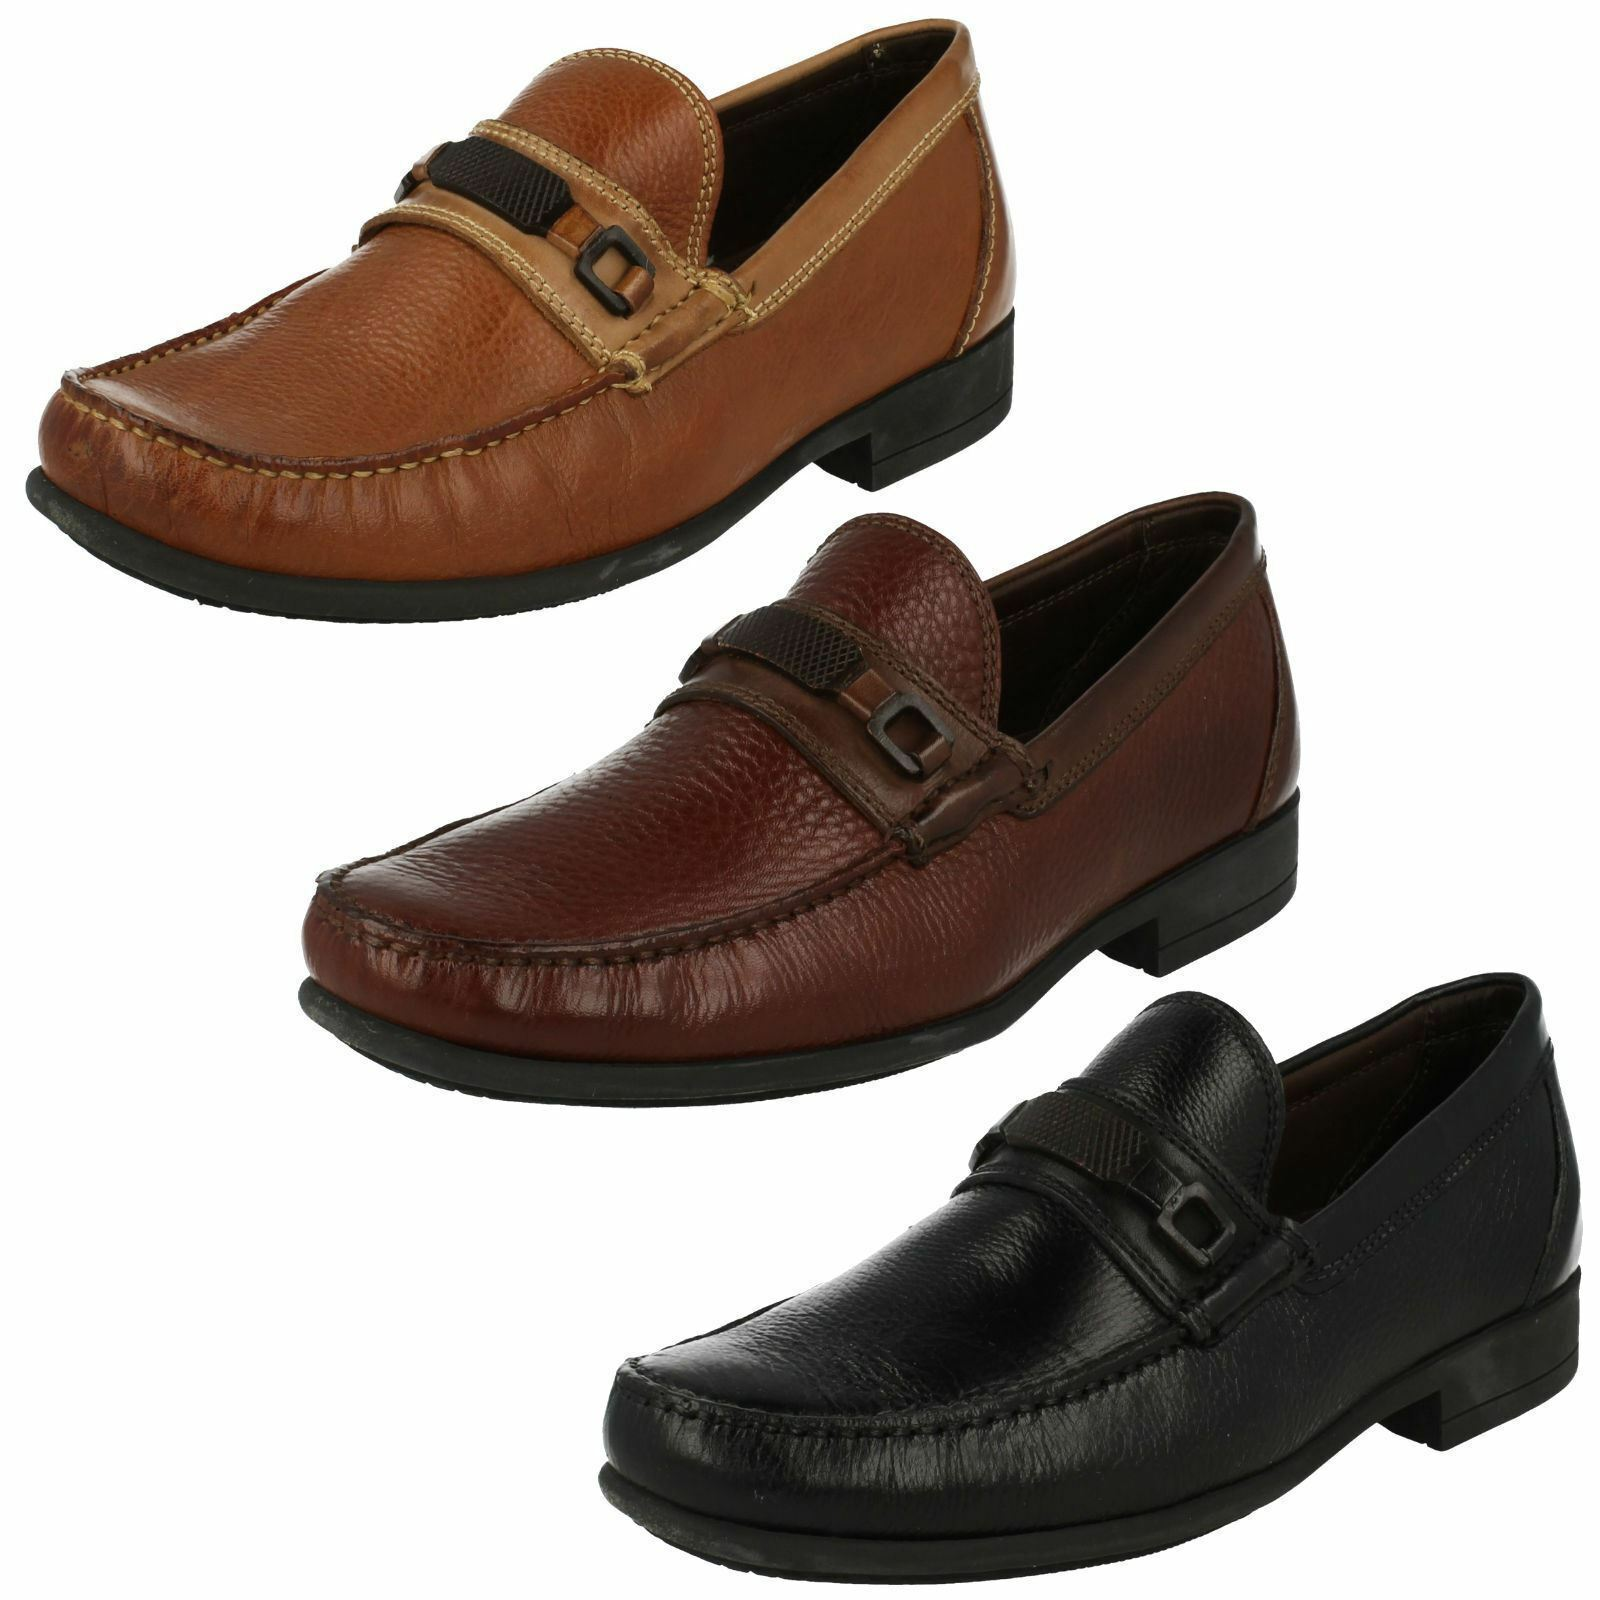 Mens Lins leather slip on shoe by Anatomic £79.00